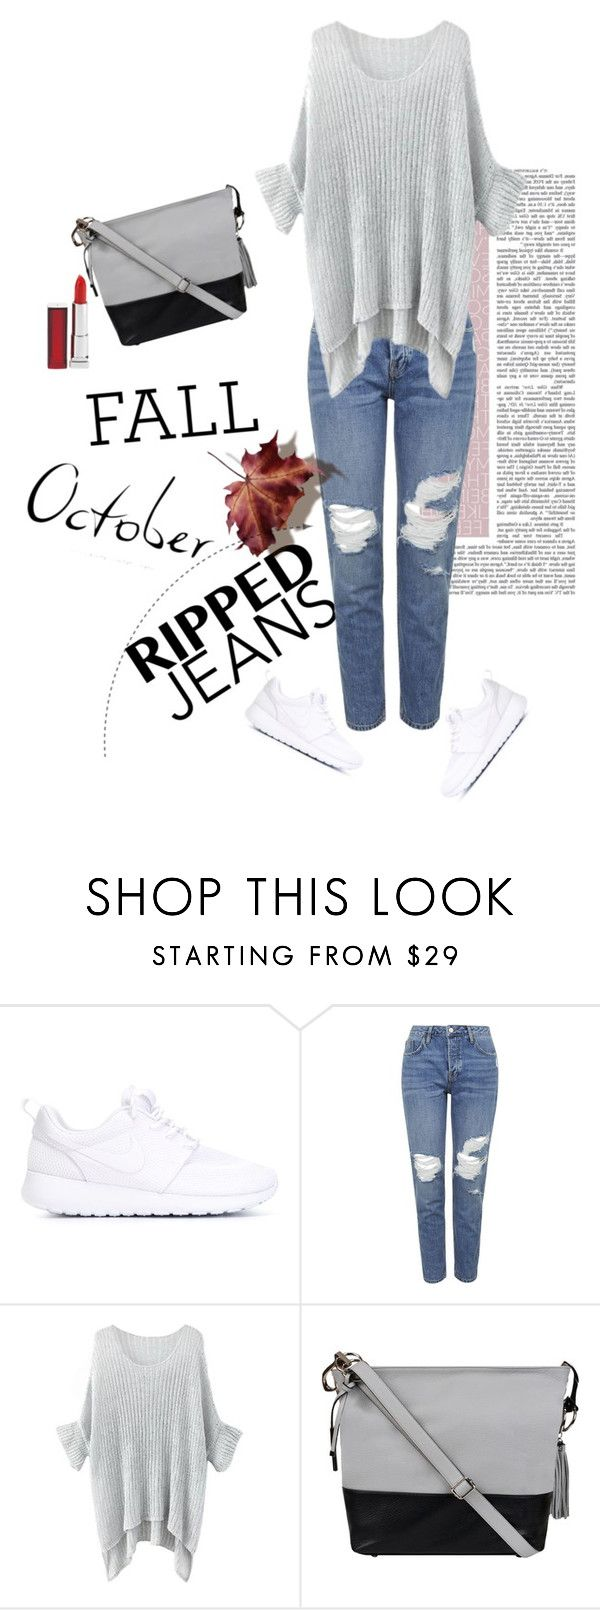 """""""Ripped jeans"""" by melisa-hasic ❤ liked on Polyvore featuring NIKE, Topshop, Wilsons Leather, Maybelline and rippedjeans"""